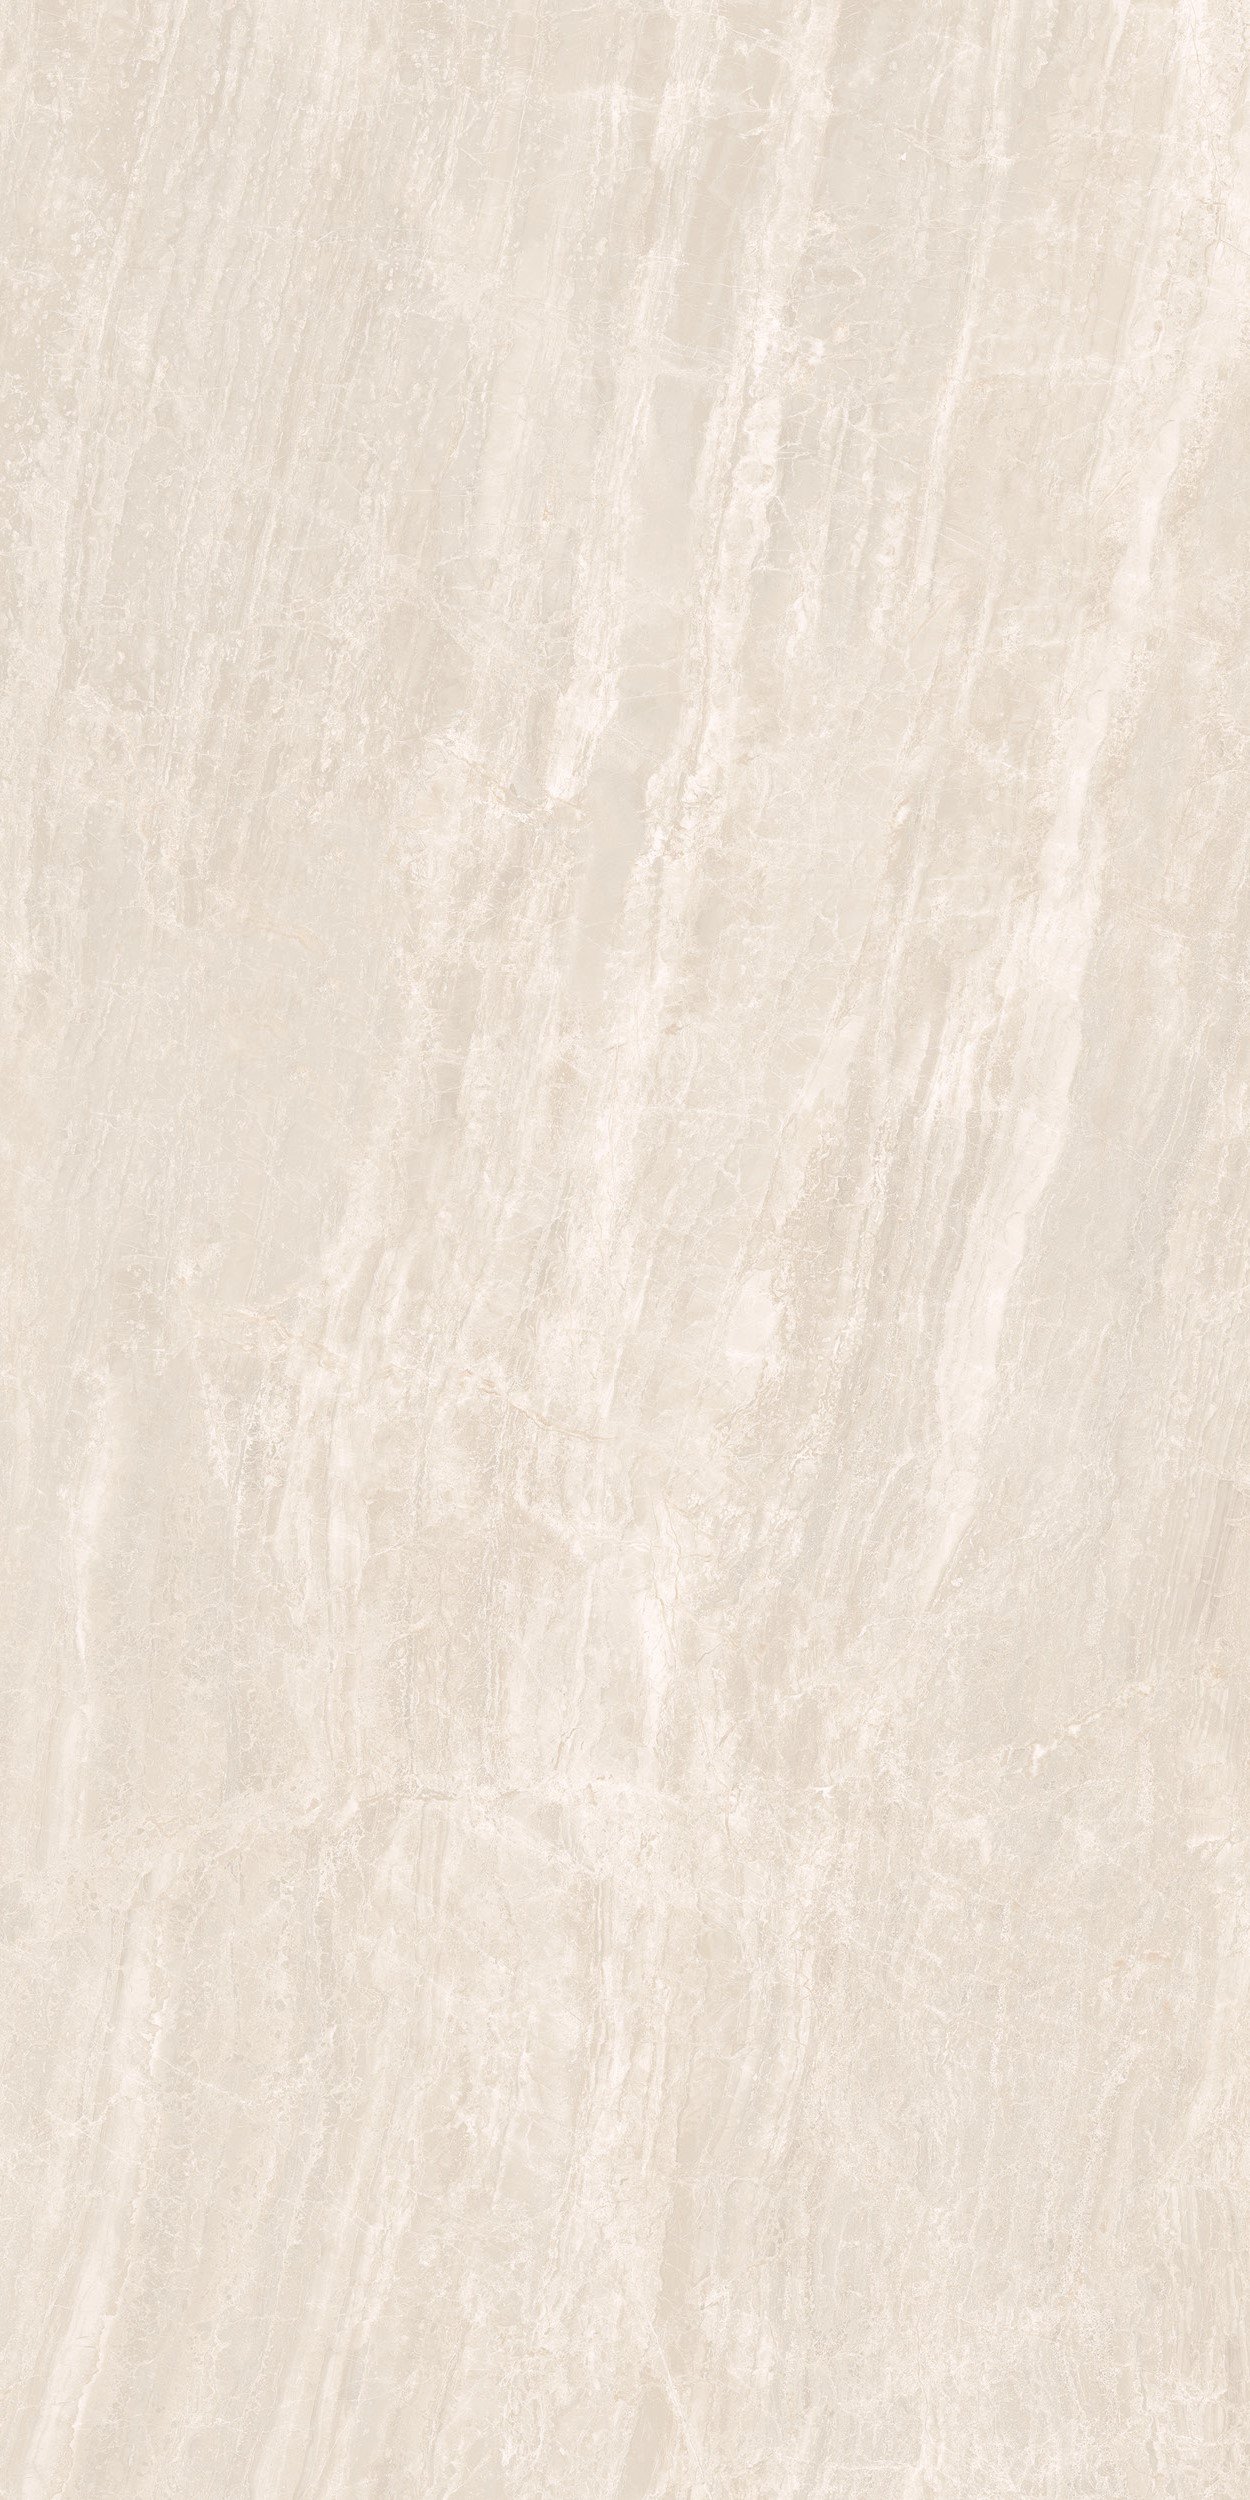 32 X 72 Cosmic Ivory High Polished Rectified Porcelain Tile (SPECIAL ORDER ONLY)